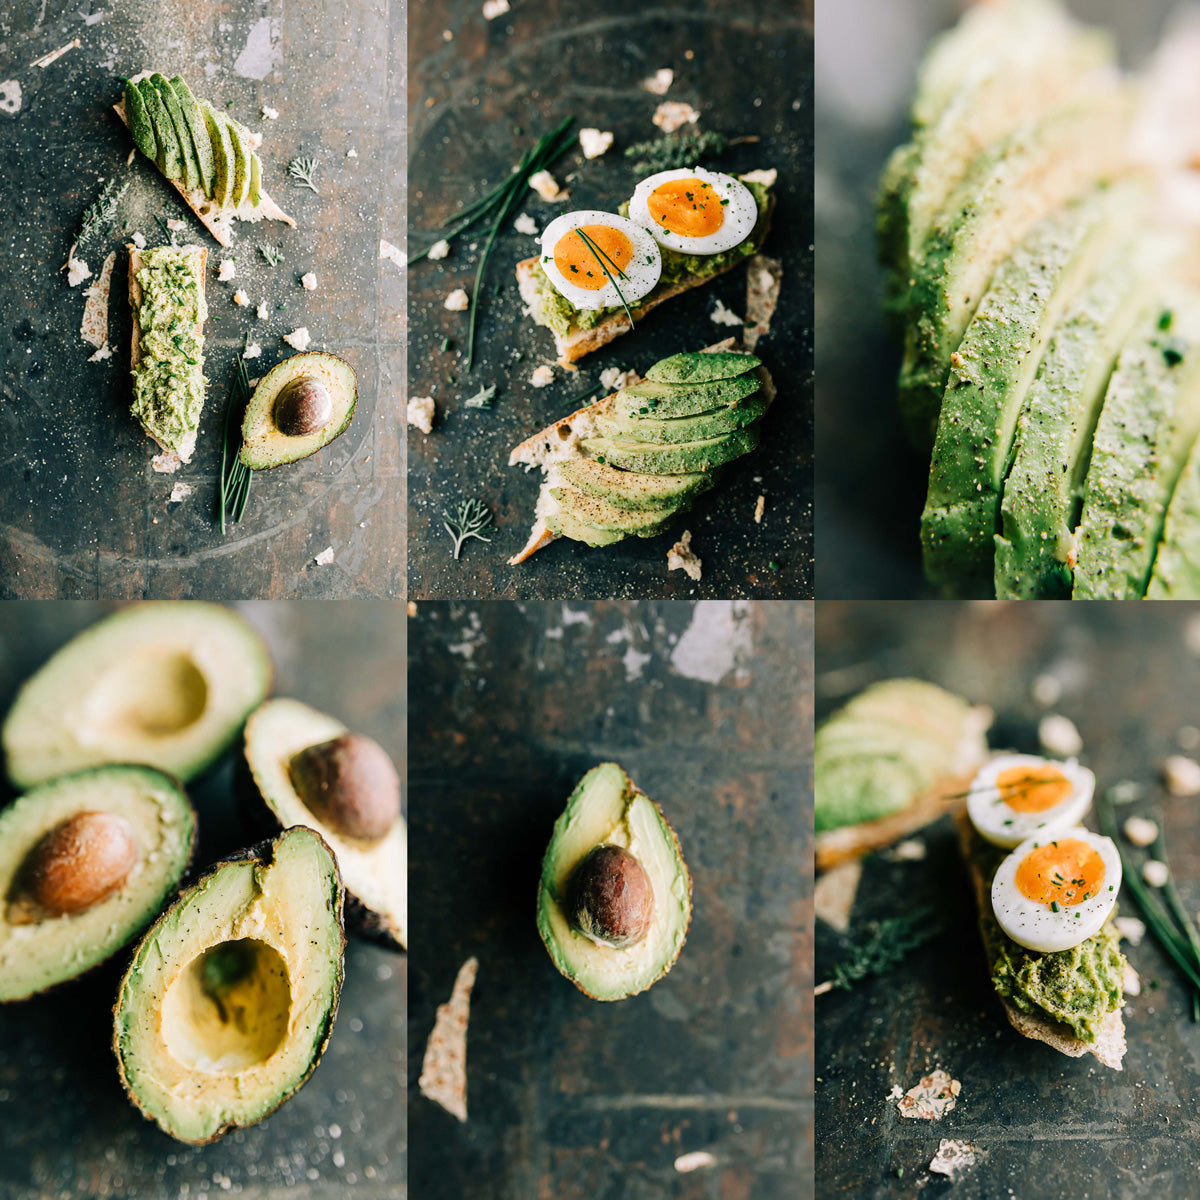 Avocado Food Photography by Christina Quesenberry